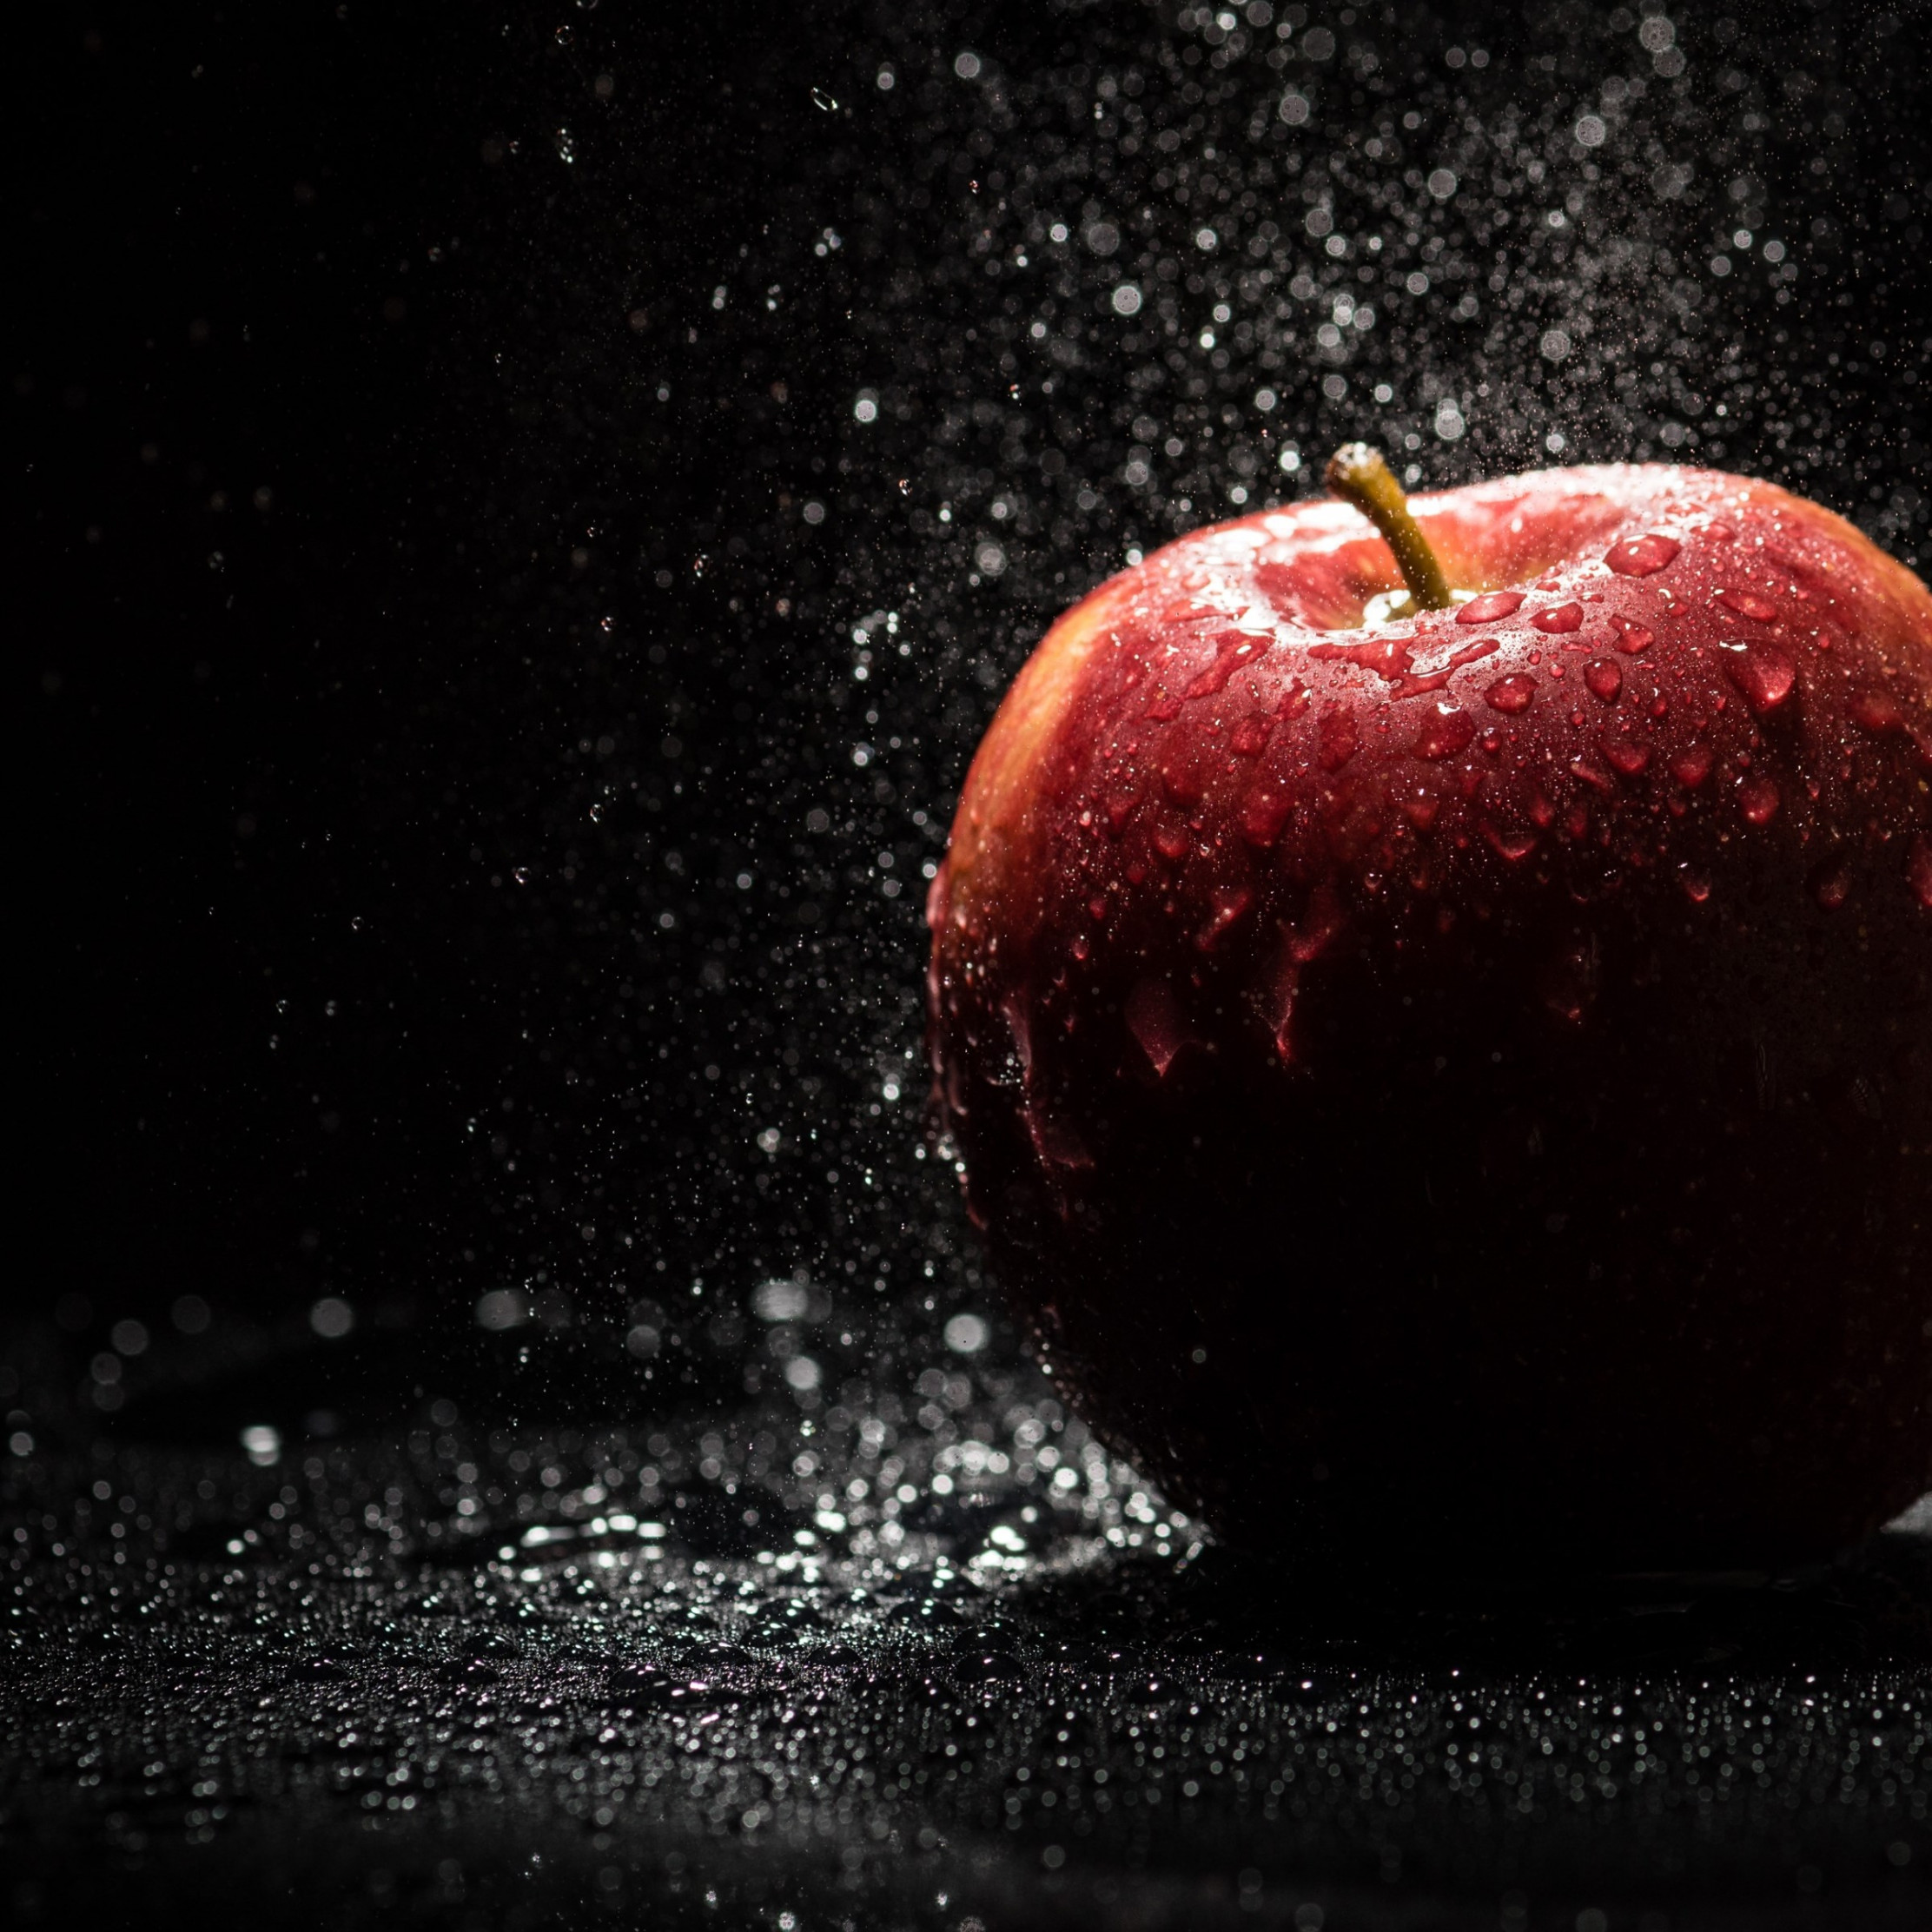 The apple, natural red apple wallpaper 2224x2224